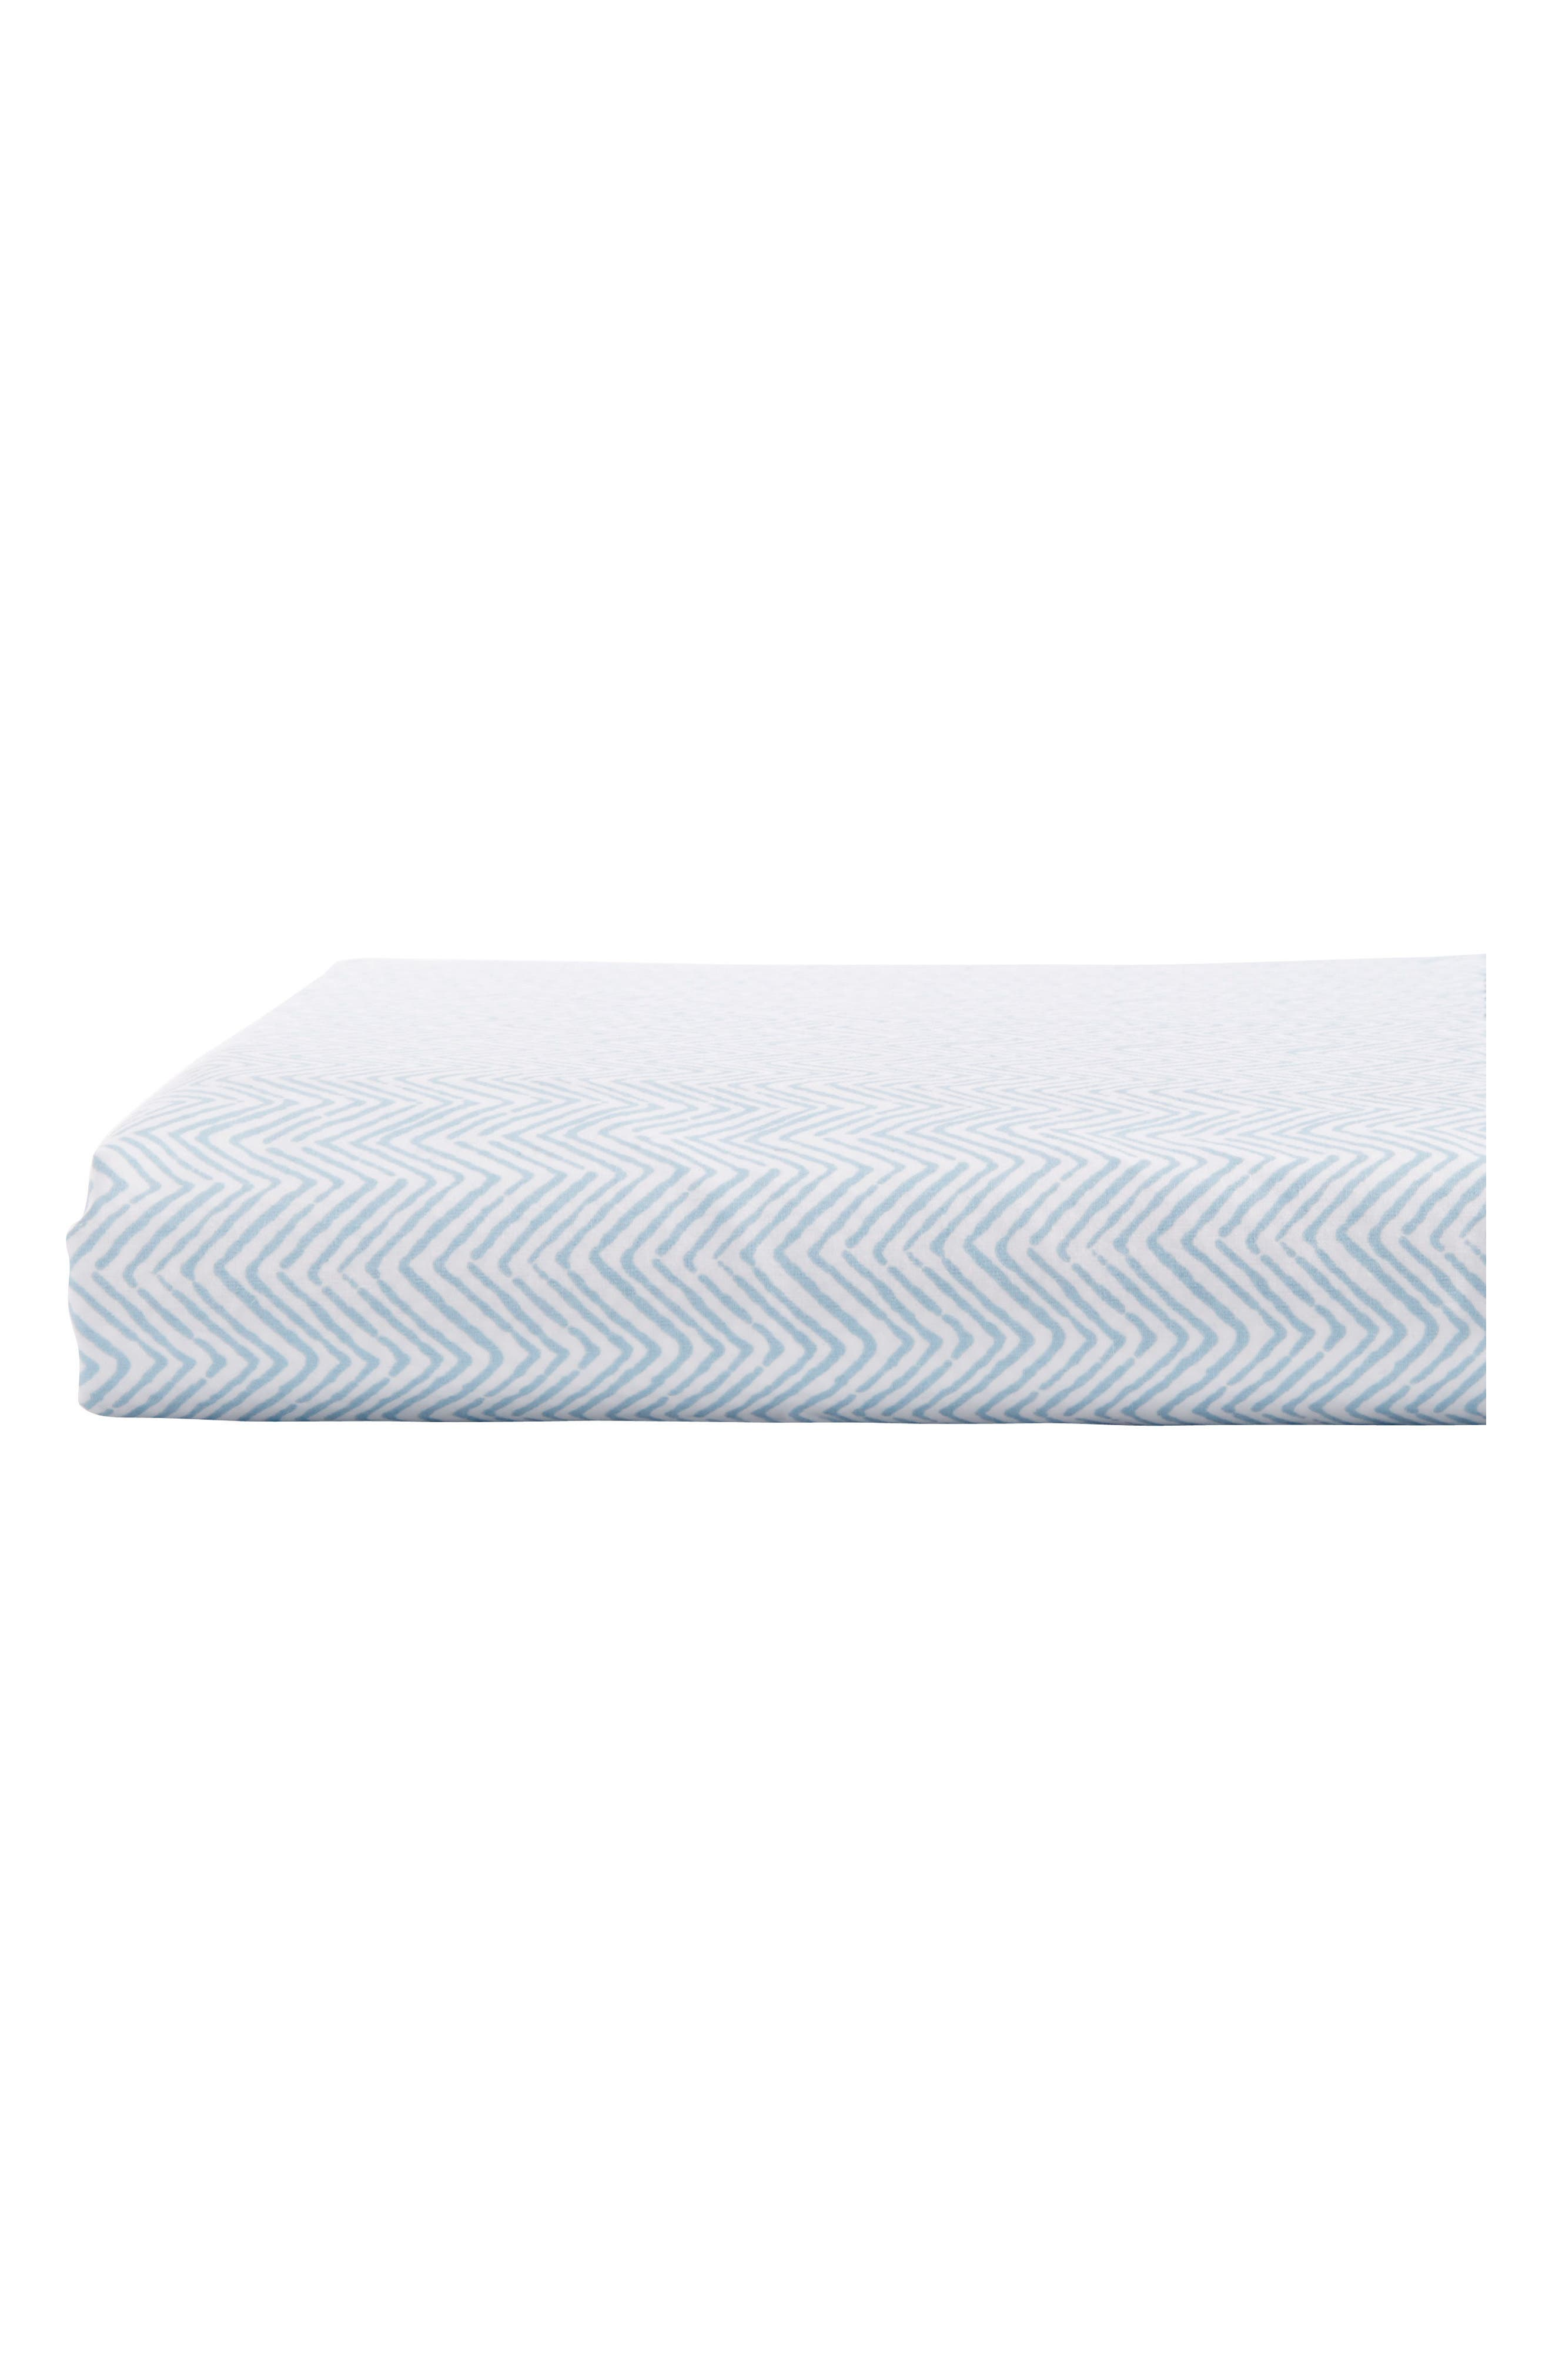 Chevron 400 Thread Count Fitted Sheet,                             Main thumbnail 1, color,                             400